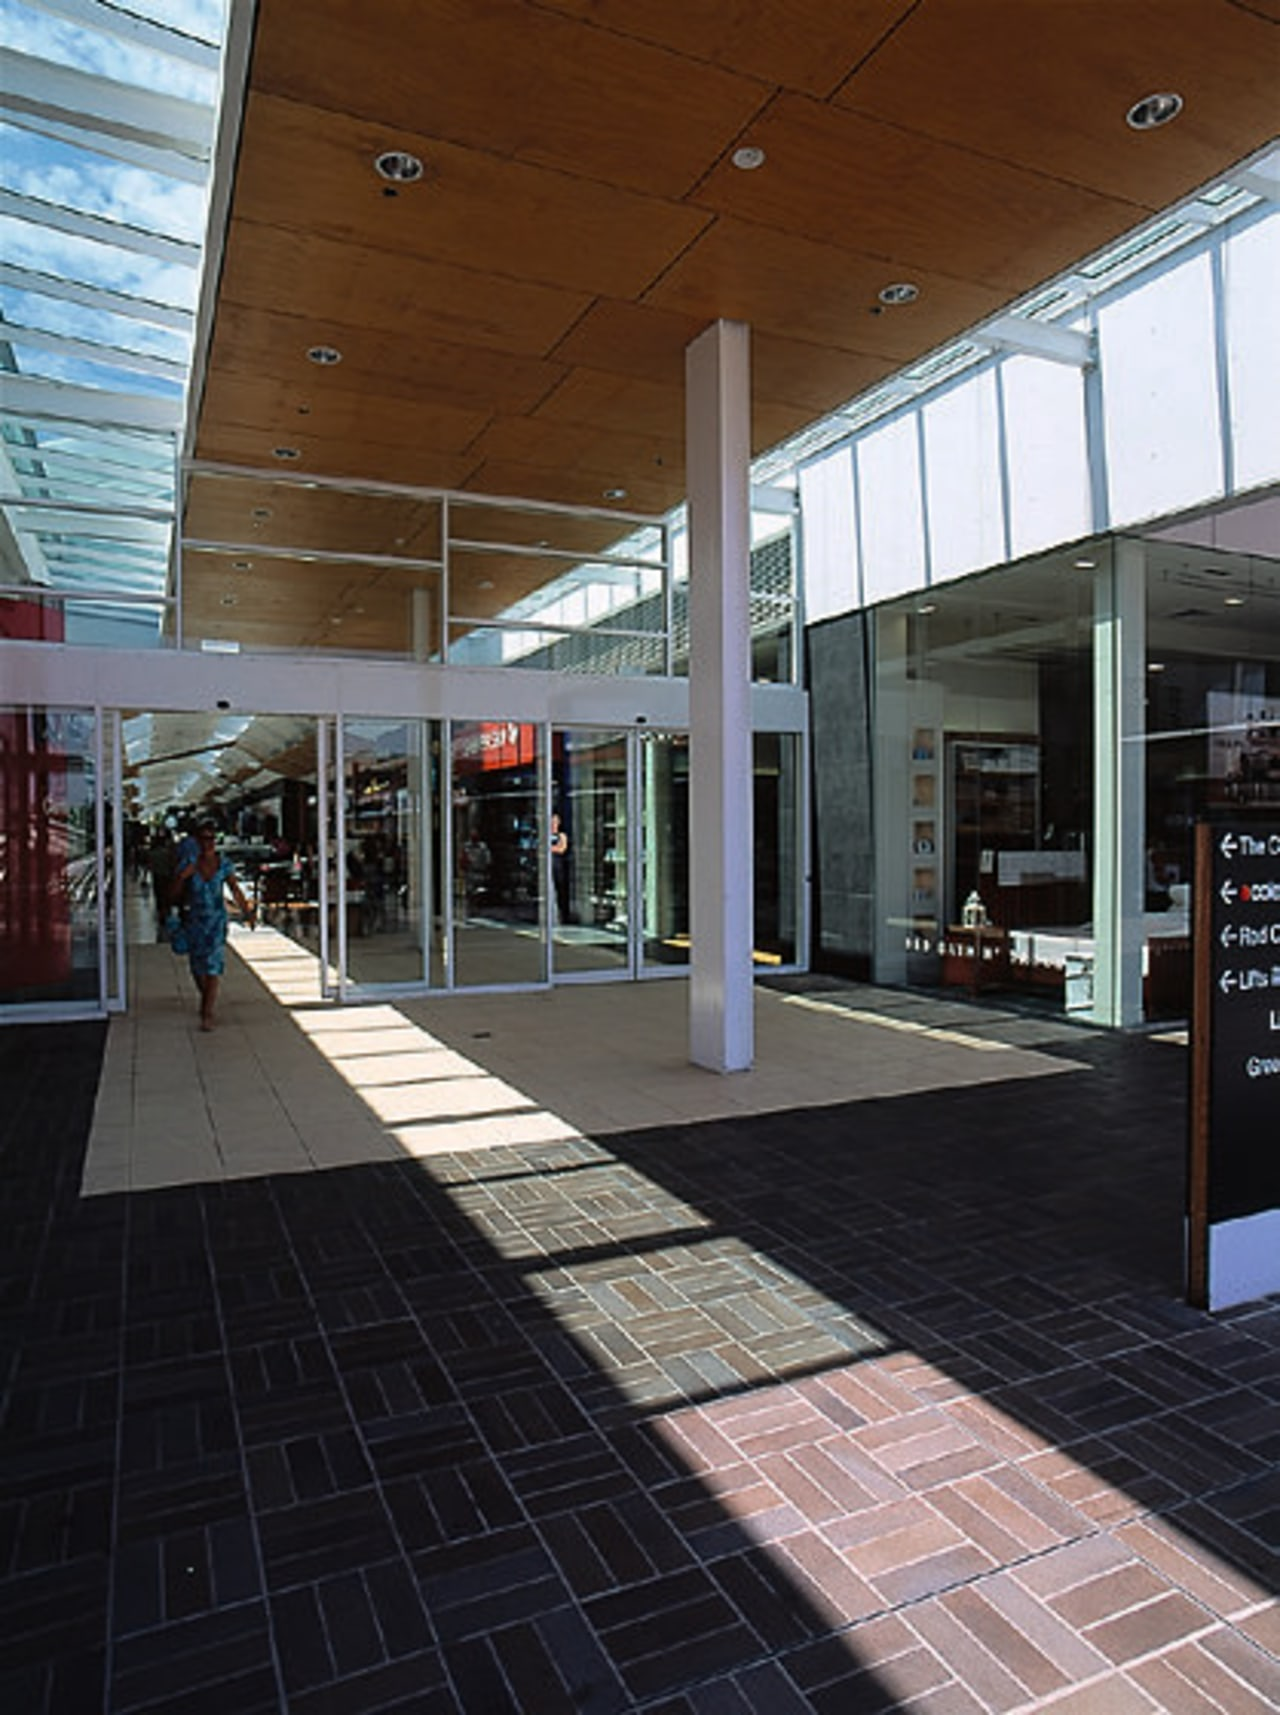 View of entrance to shopping centre in New architecture, building, metropolitan area, shopping mall, black, gray